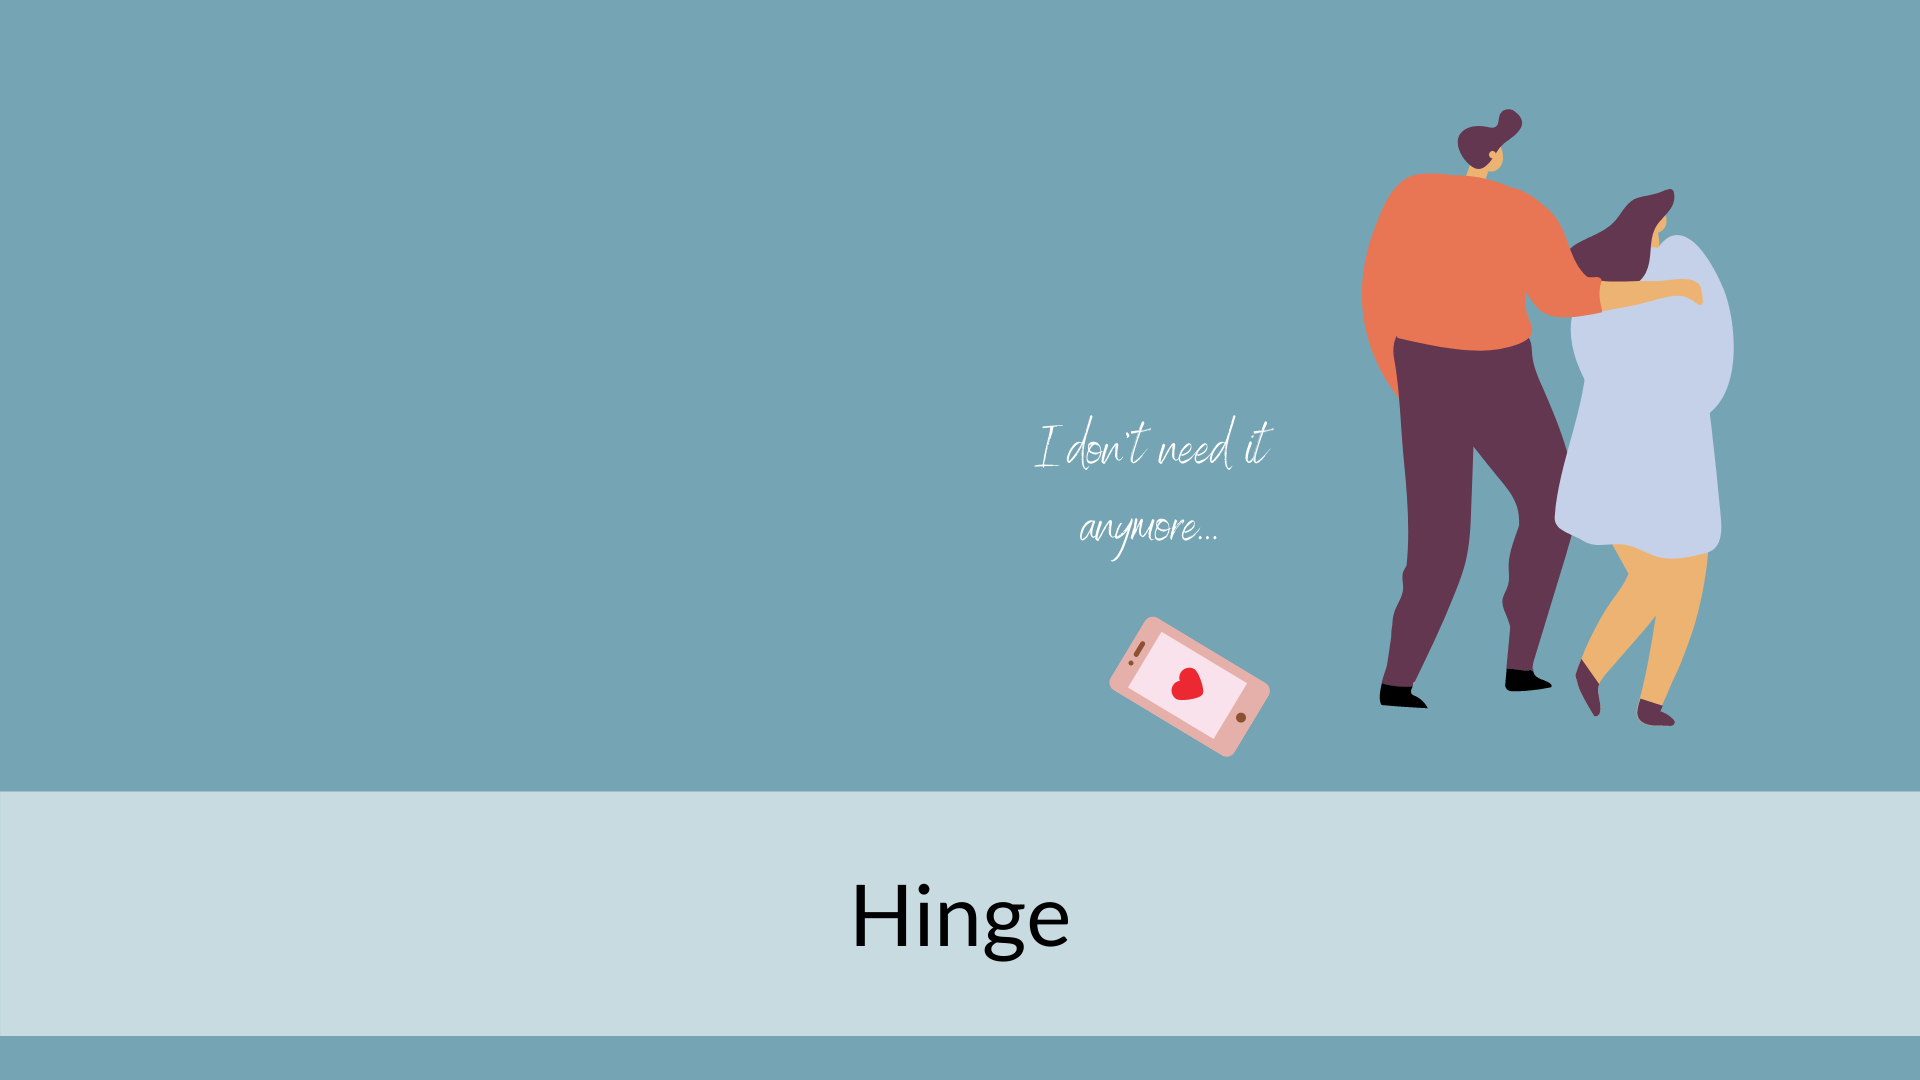 Hinge - designed to be deleted...